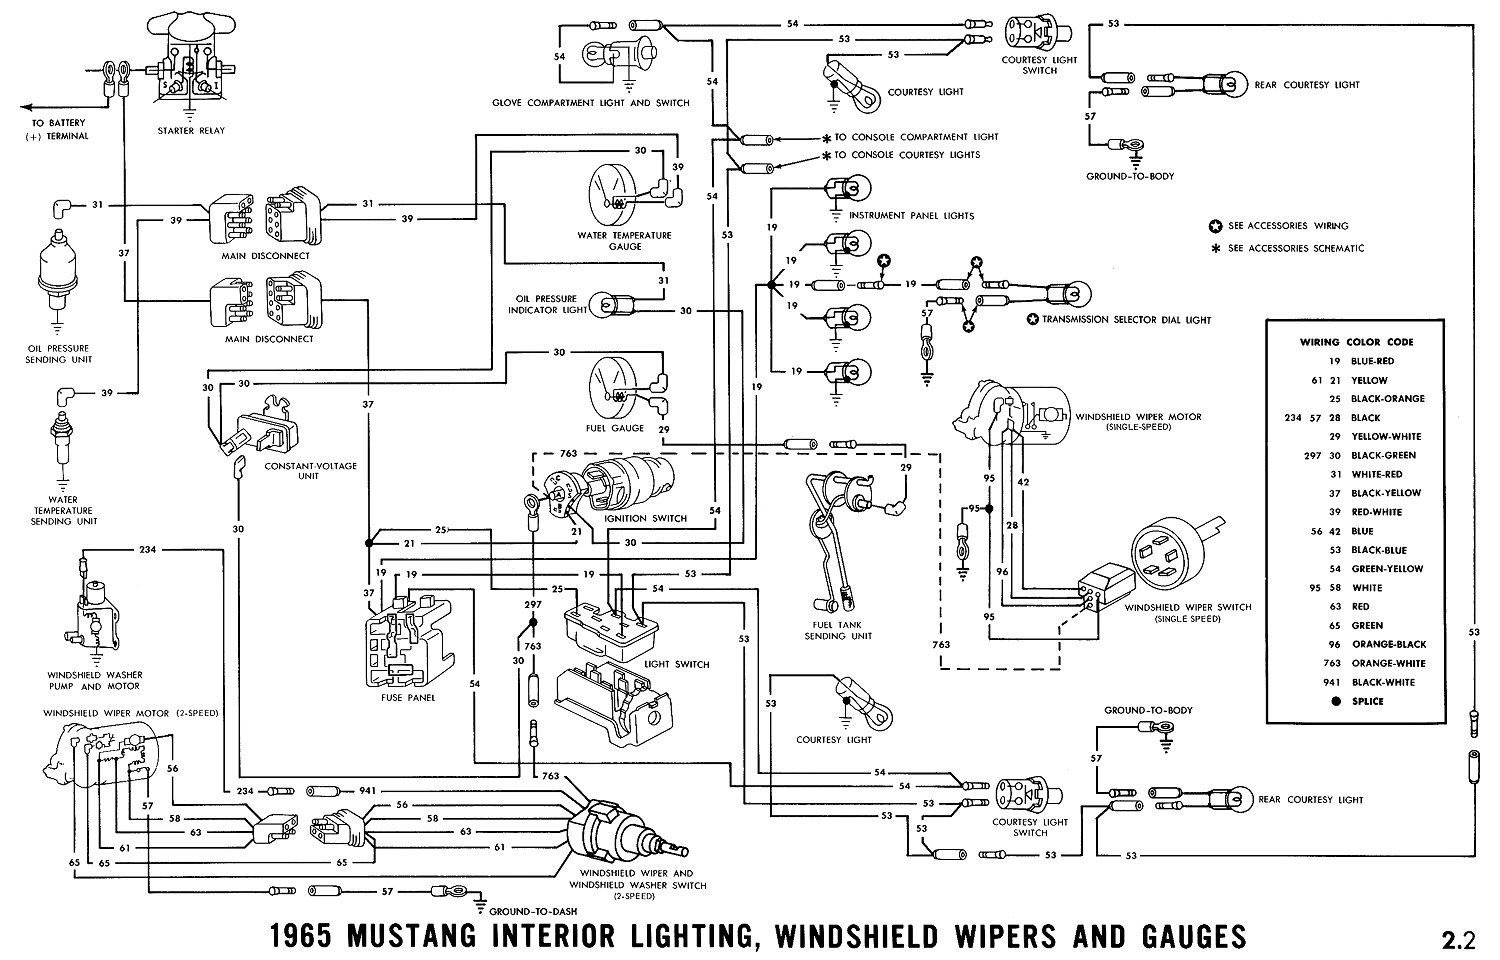 1965g 1965 mustang wiring diagrams average joe restoration 1967 mustang ignition switch wiring diagram at gsmportal.co